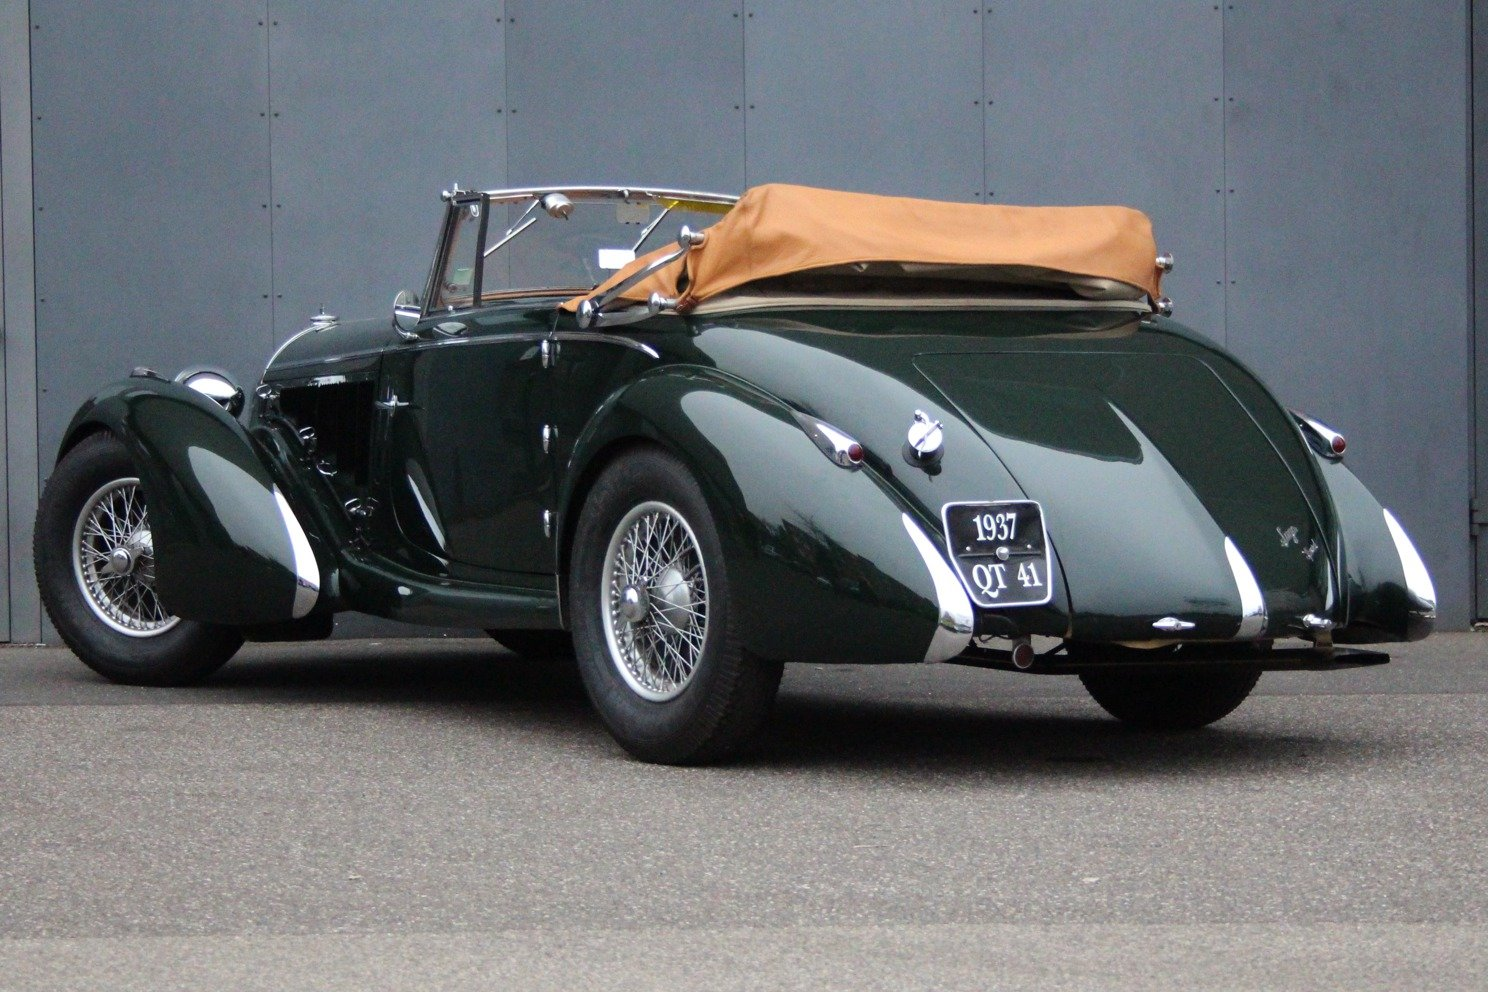 1937 Talbot Lago T150 S Lago Spéciale RHD For Sale (picture 2 of 6)